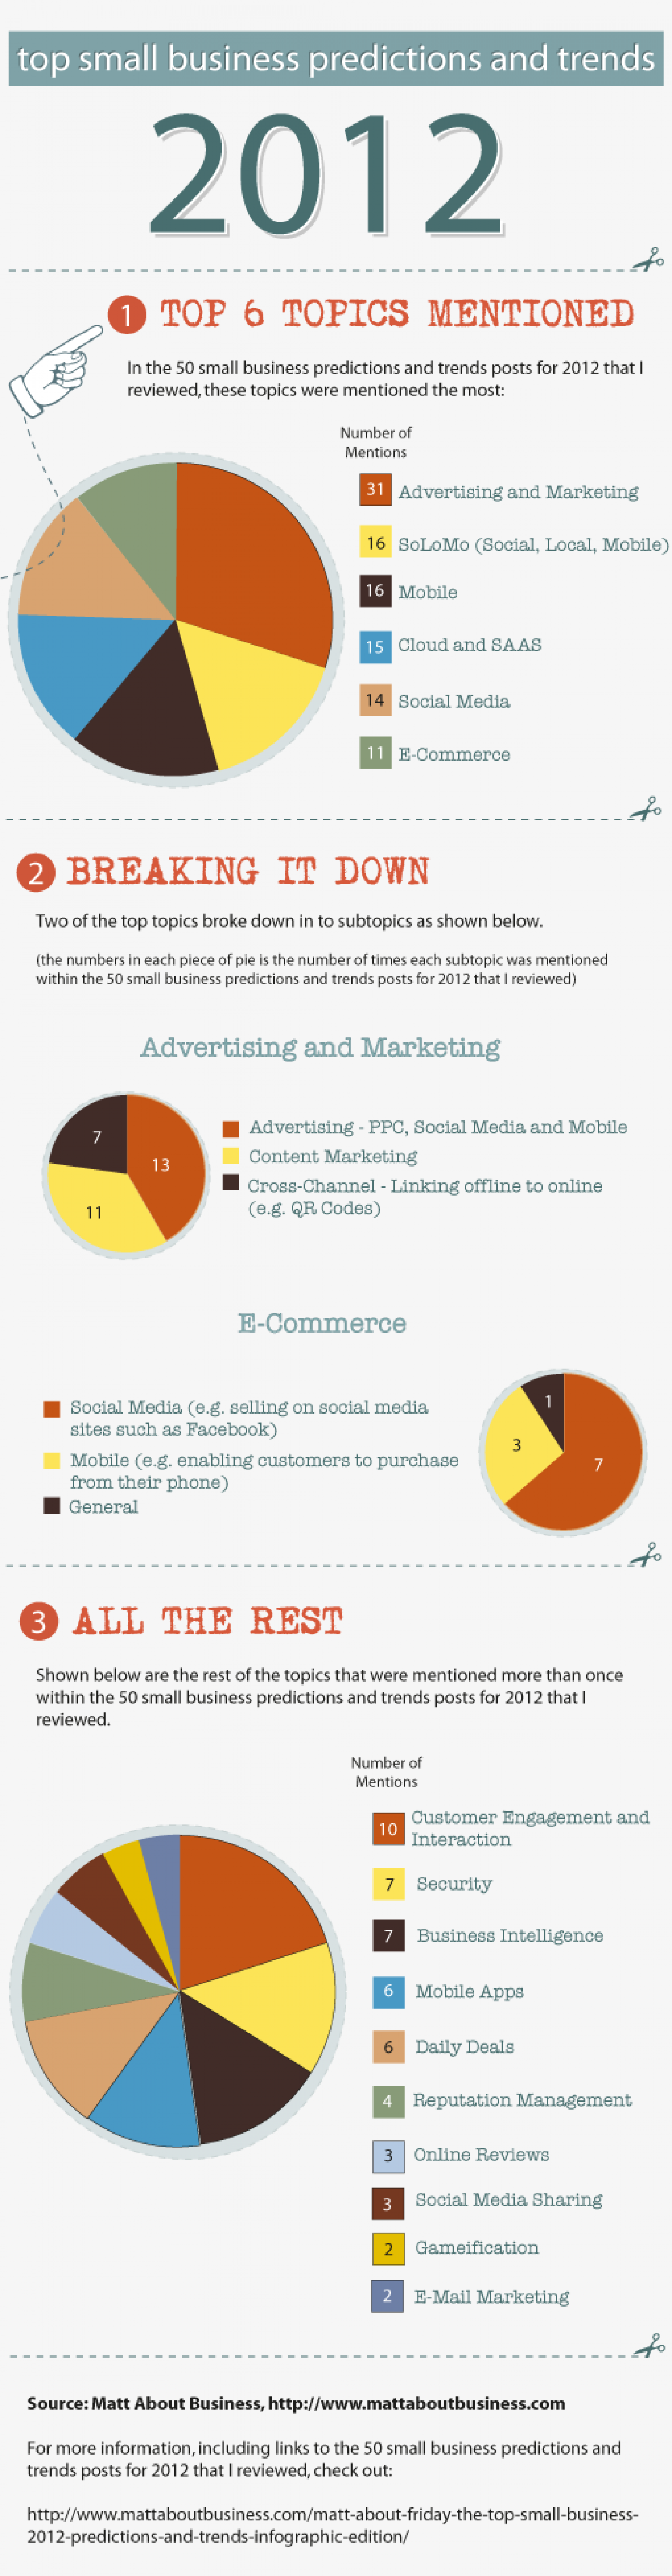 Top Small Business Predictions and Trends - 2012 Infographic